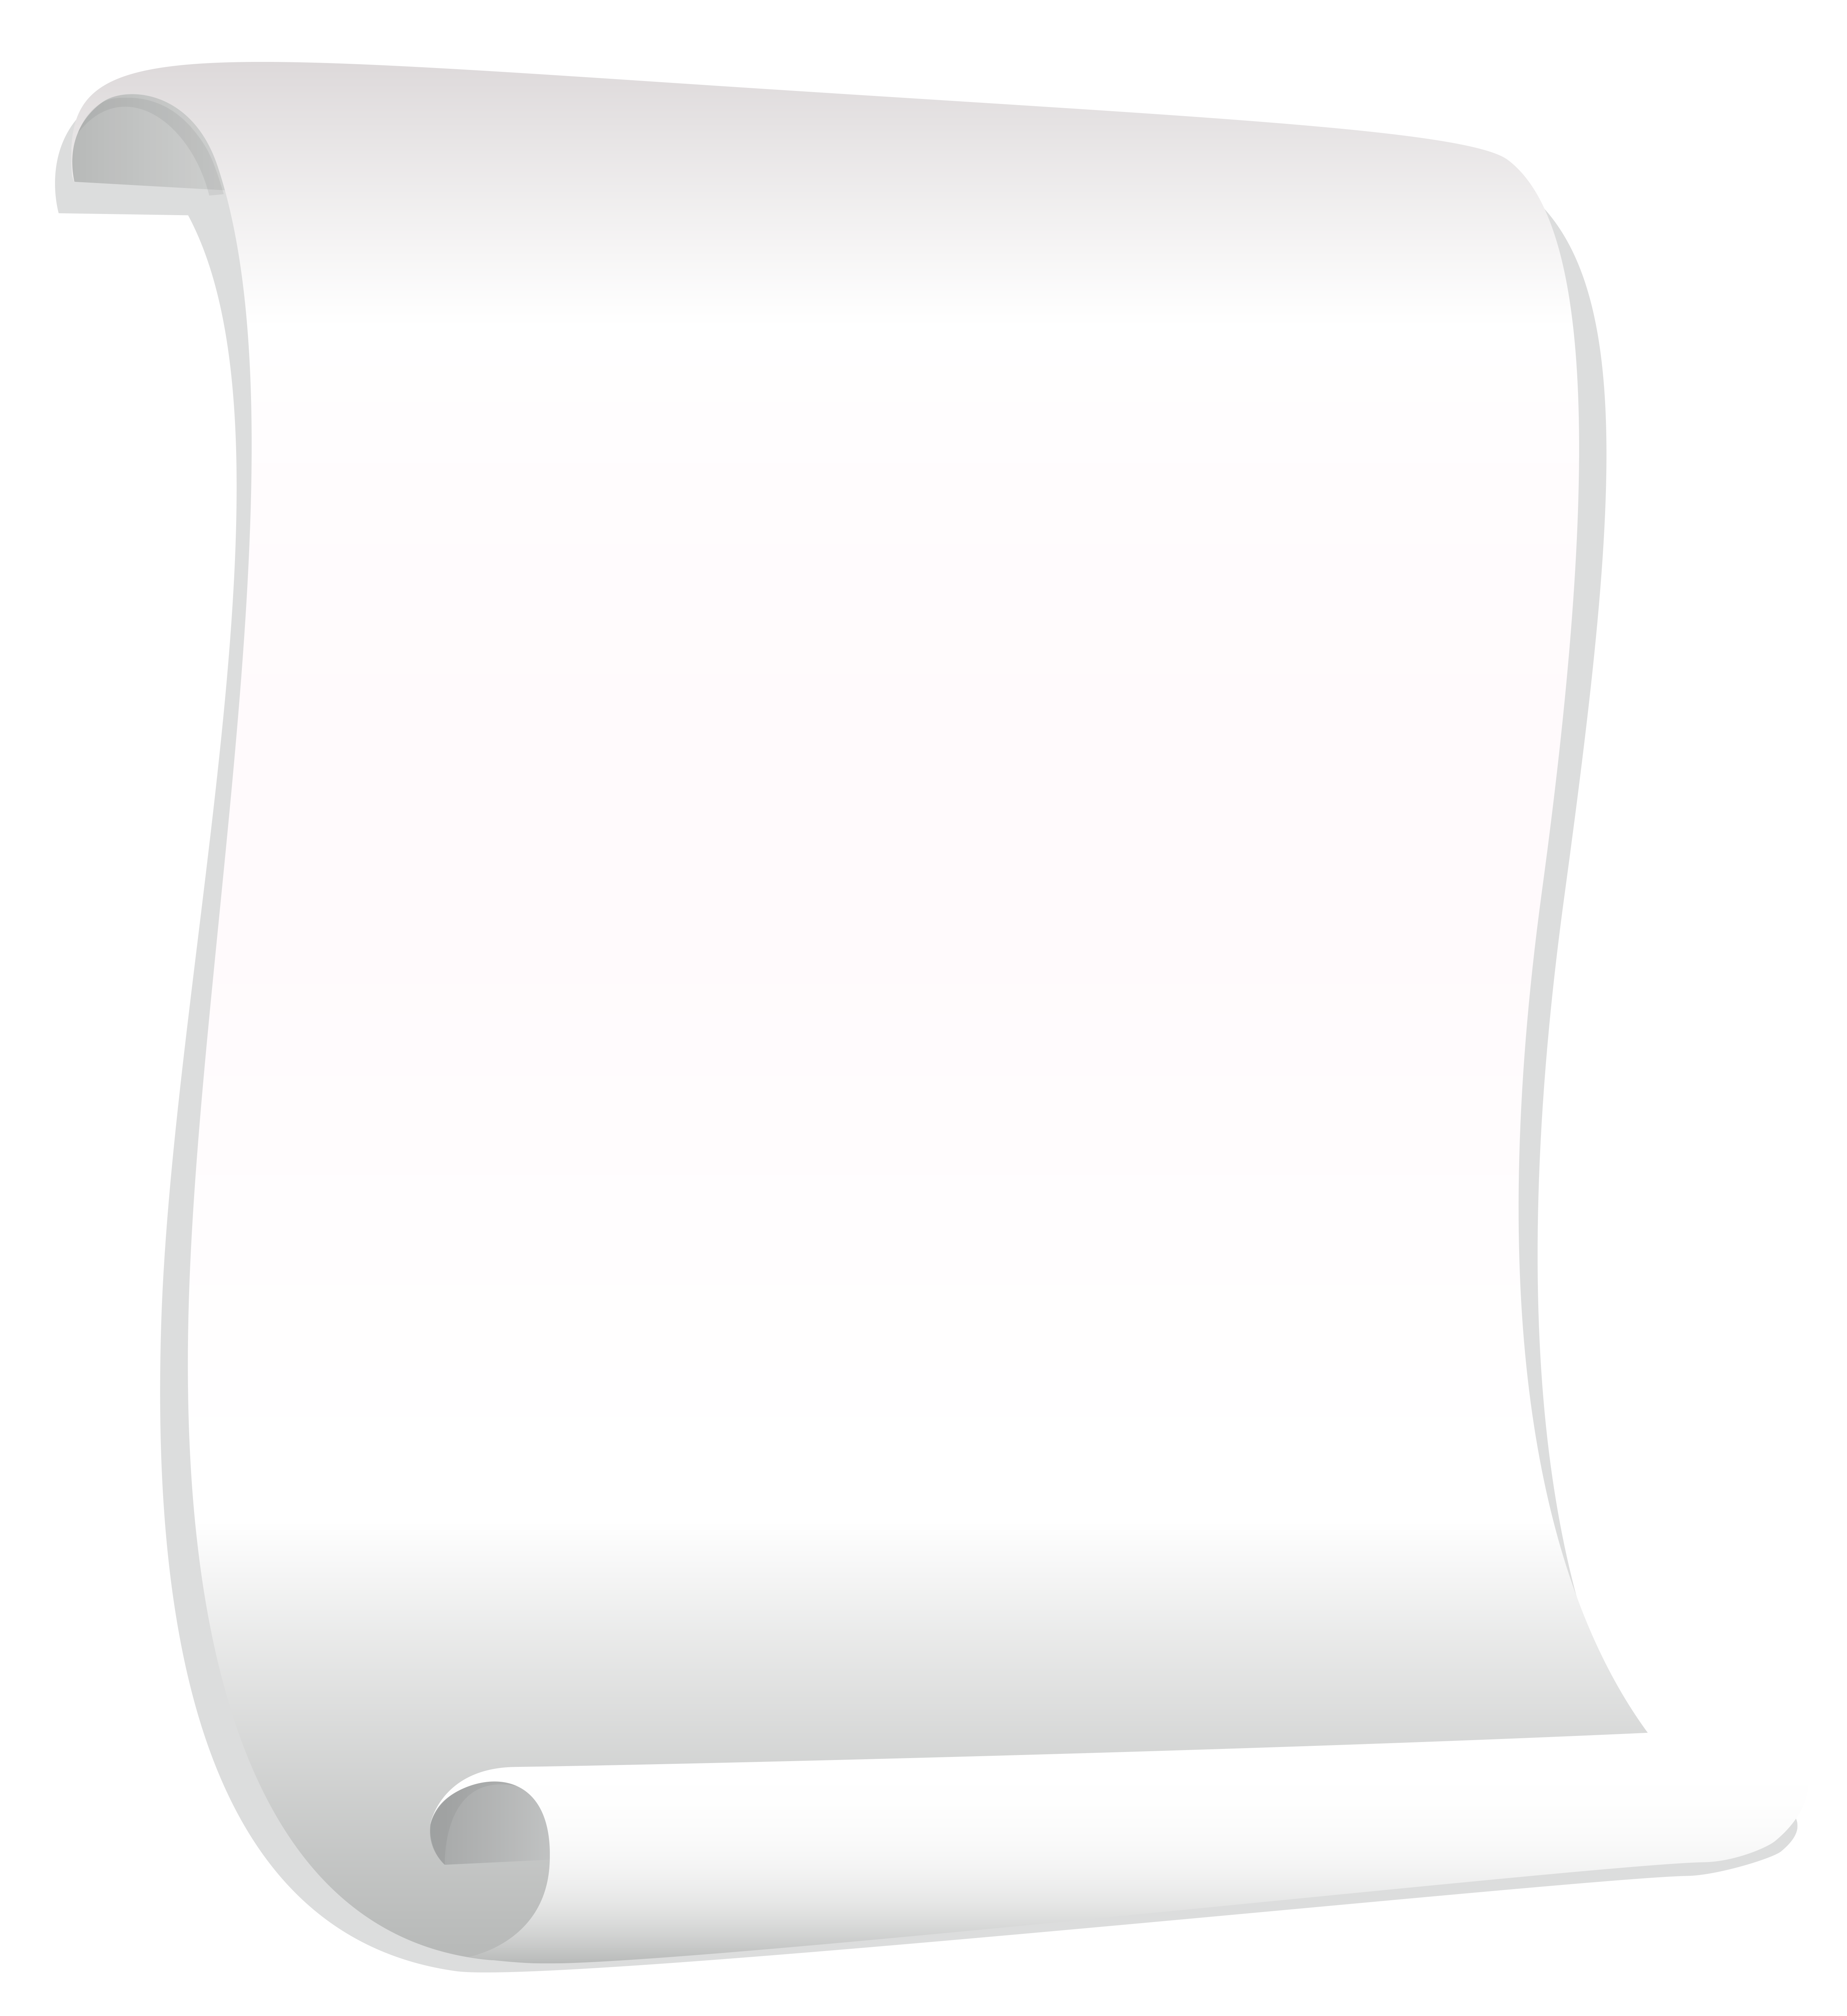 White paper png. Scrolled clipart picture gallery